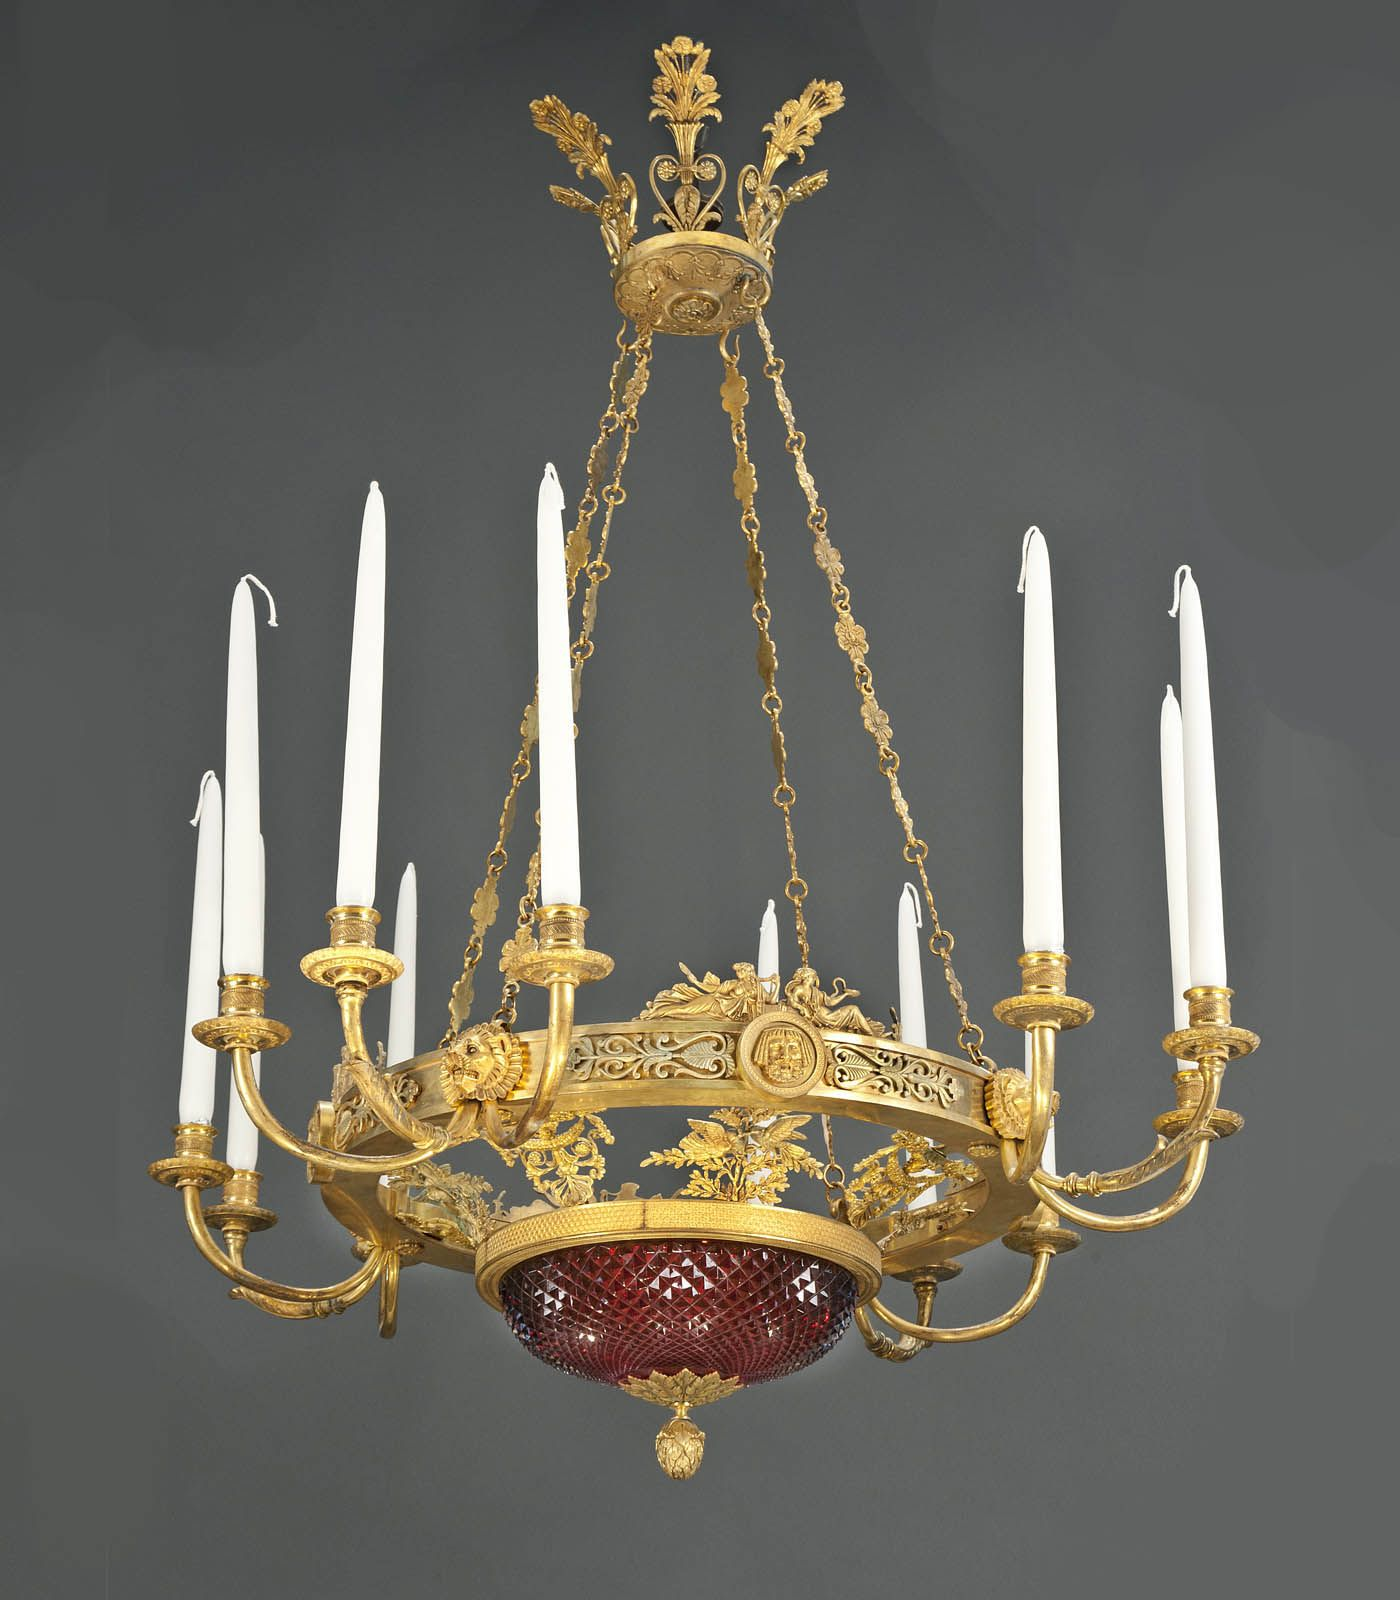 A Matched Pair Of Important And Rare Russian Empire Chandeliers By Andrei Schreiber